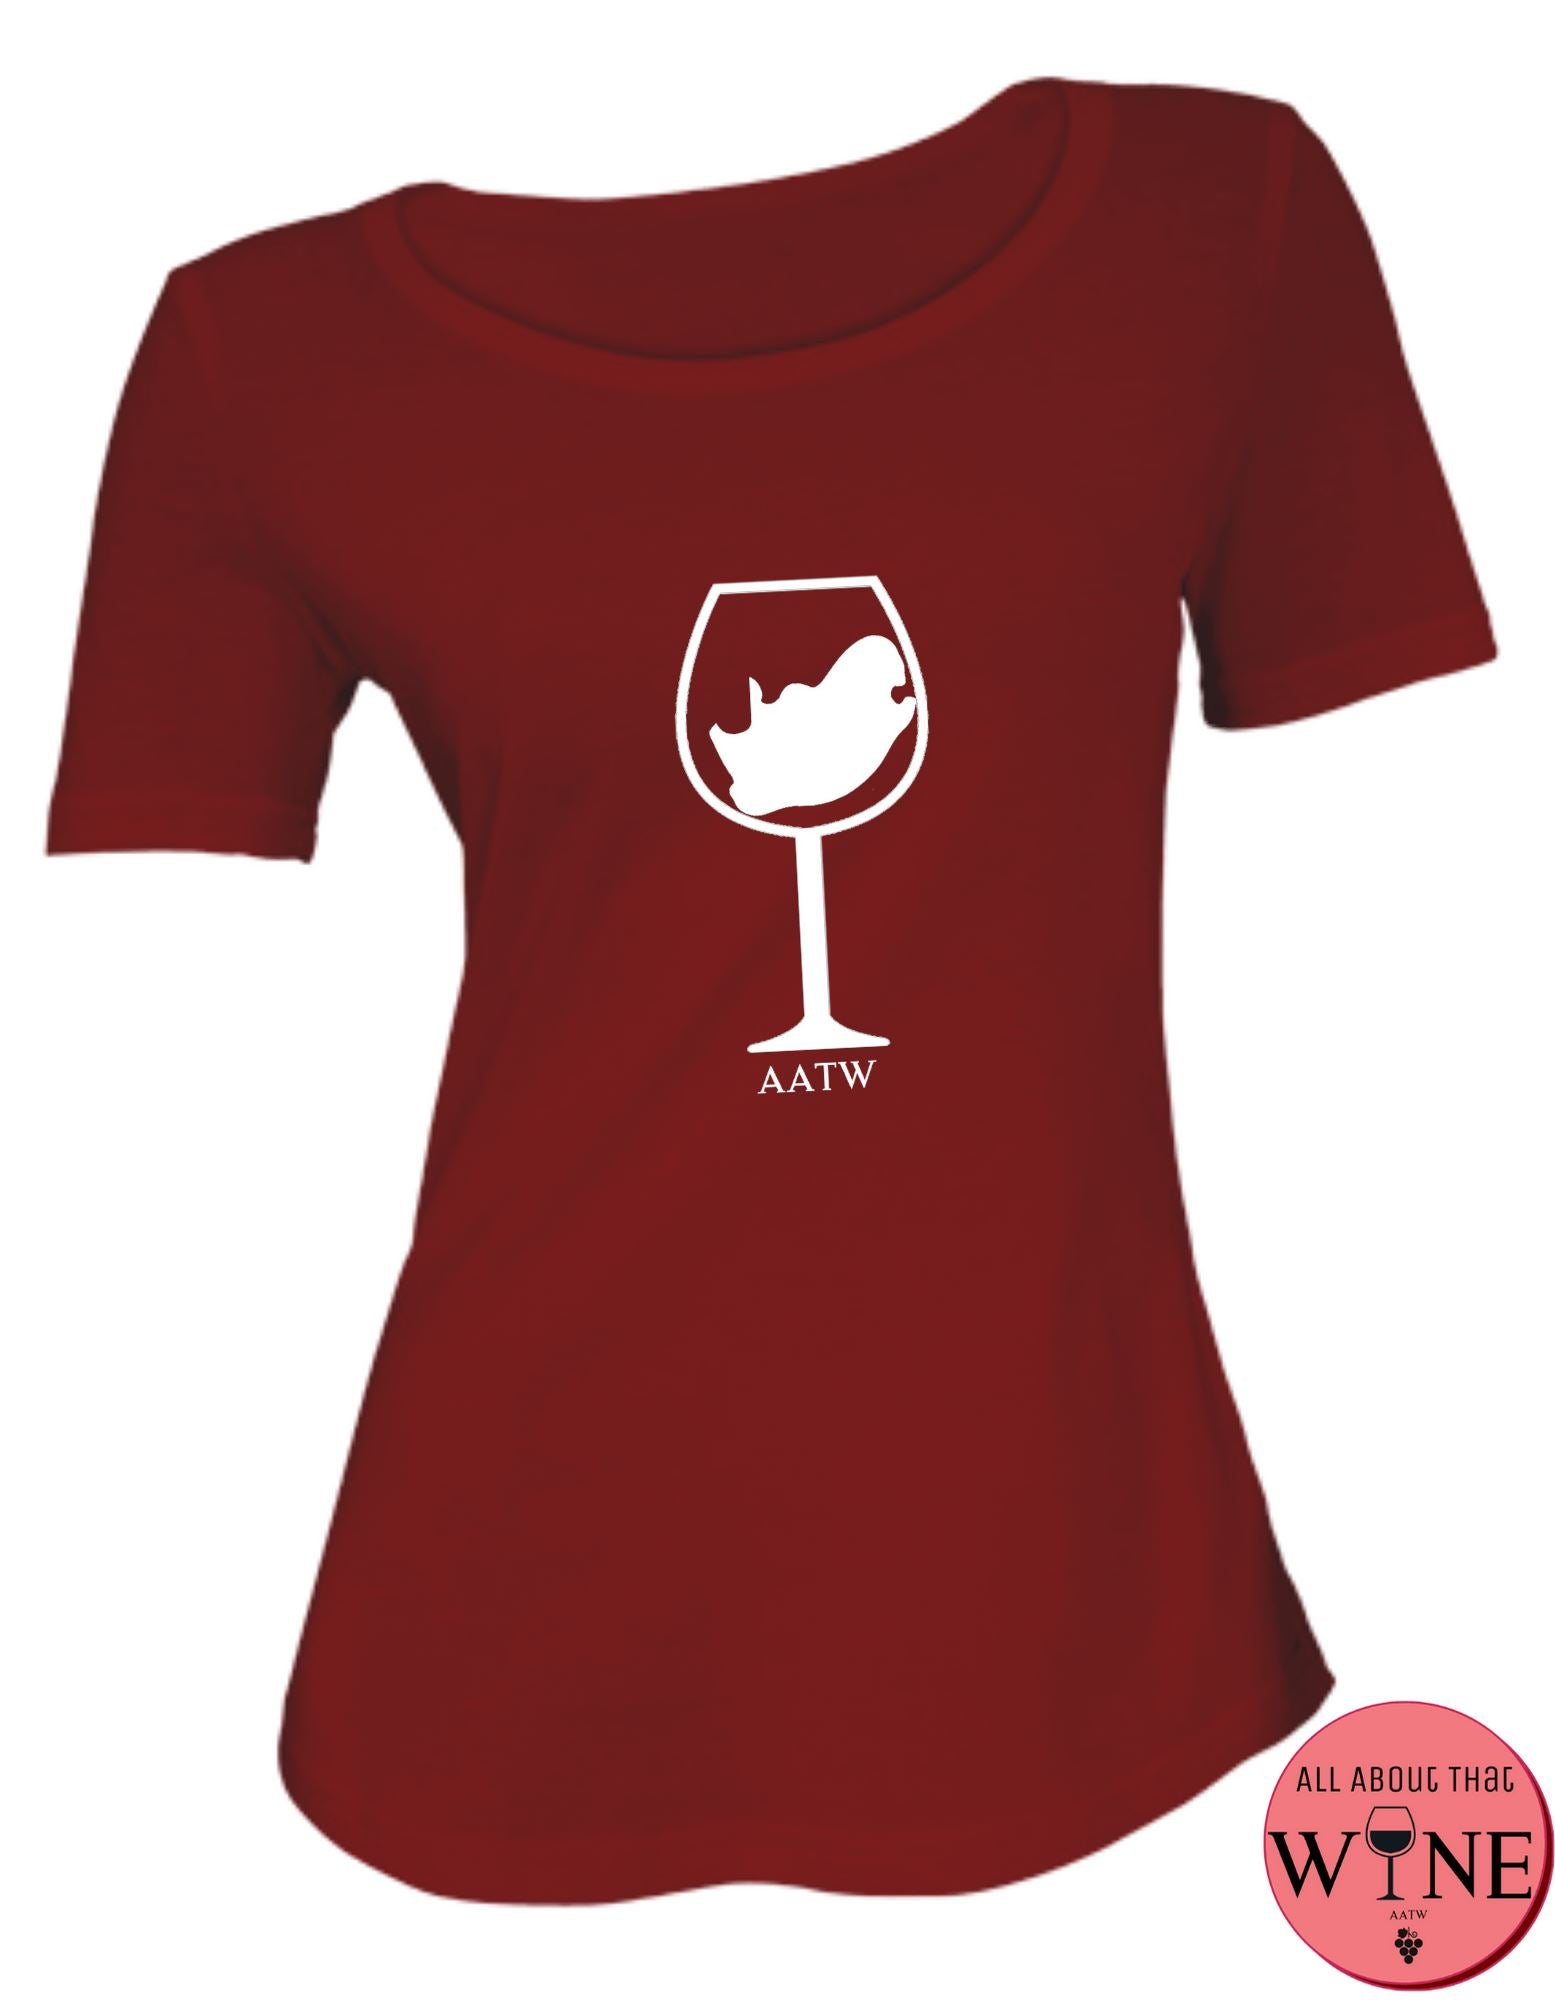 SA Wine Glass S Deep red with white